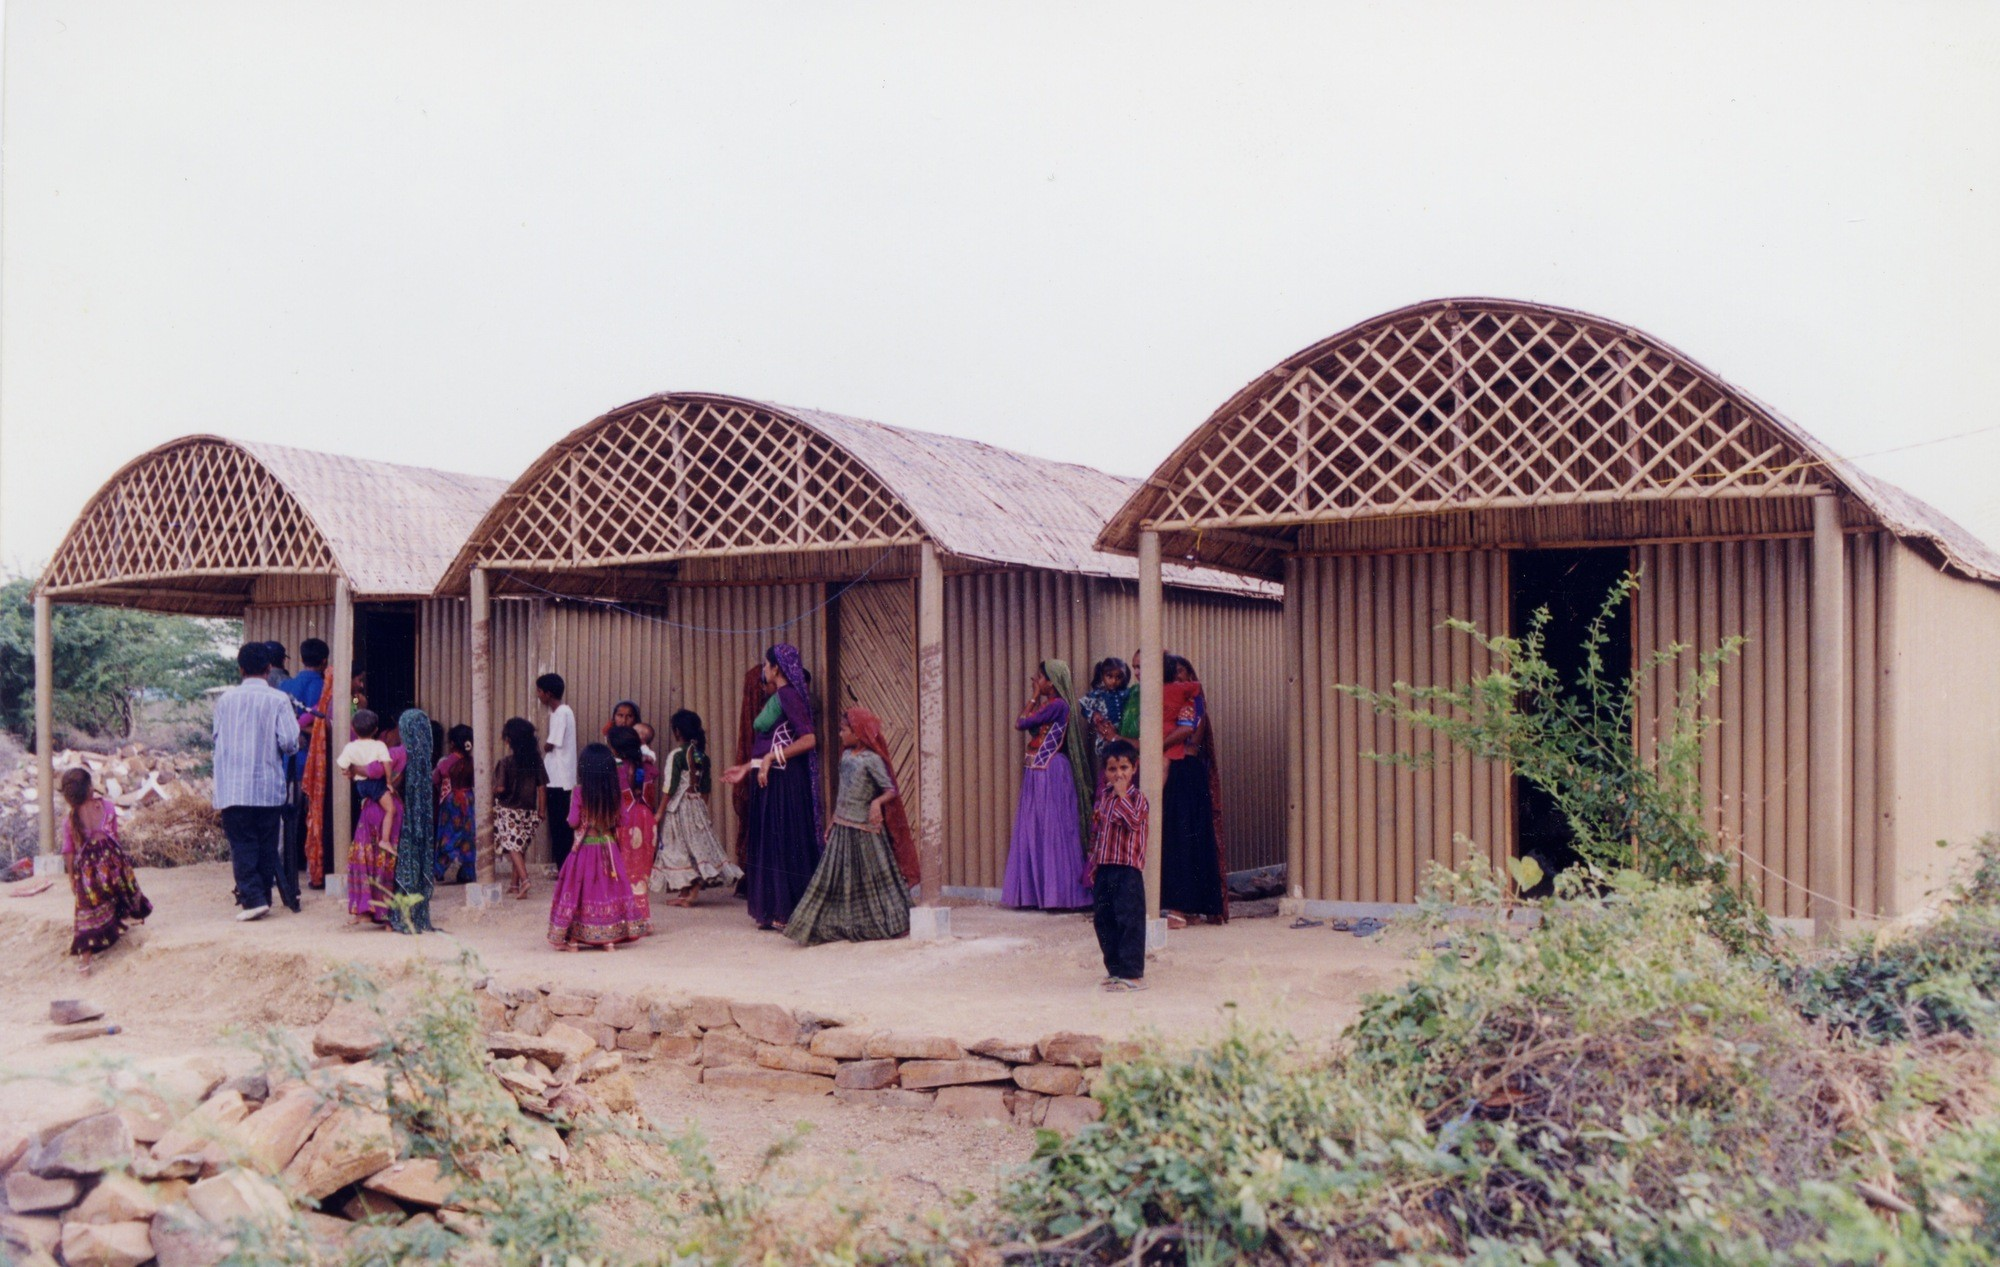 Shigeru Ban's permanent paper housing in India. Image © Kartikeya Shodhan